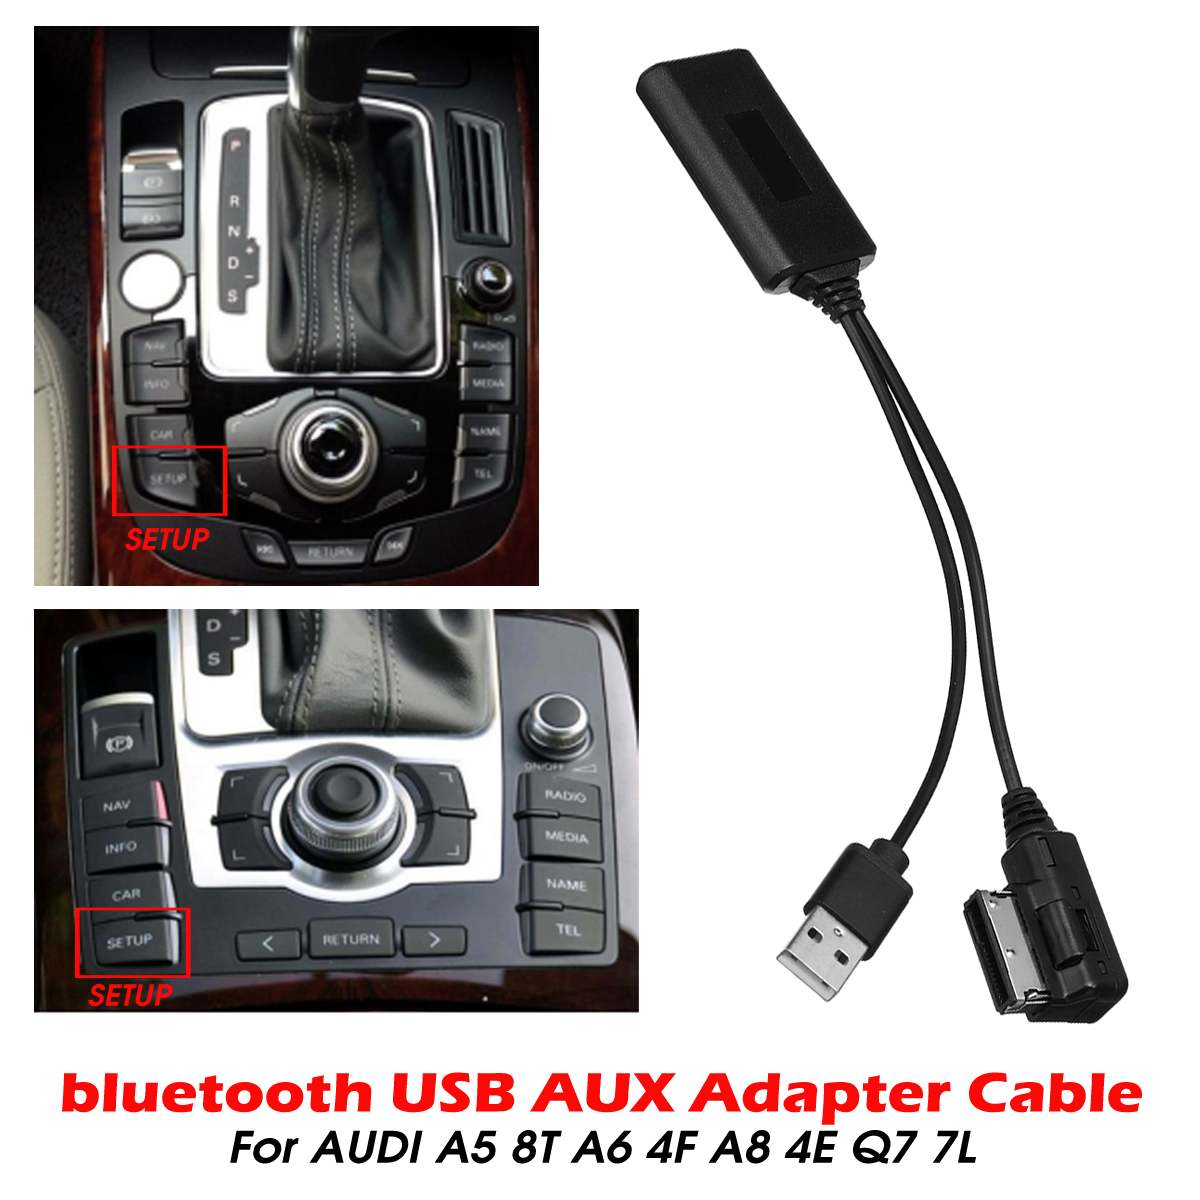 Mini Wireless bluetooth USB AUX In Adapter Cable Music Audio Receiver Adapter For AUDI A5 8T A6 4F A8 4E Q7 7L for AMI MMI 2G(China)